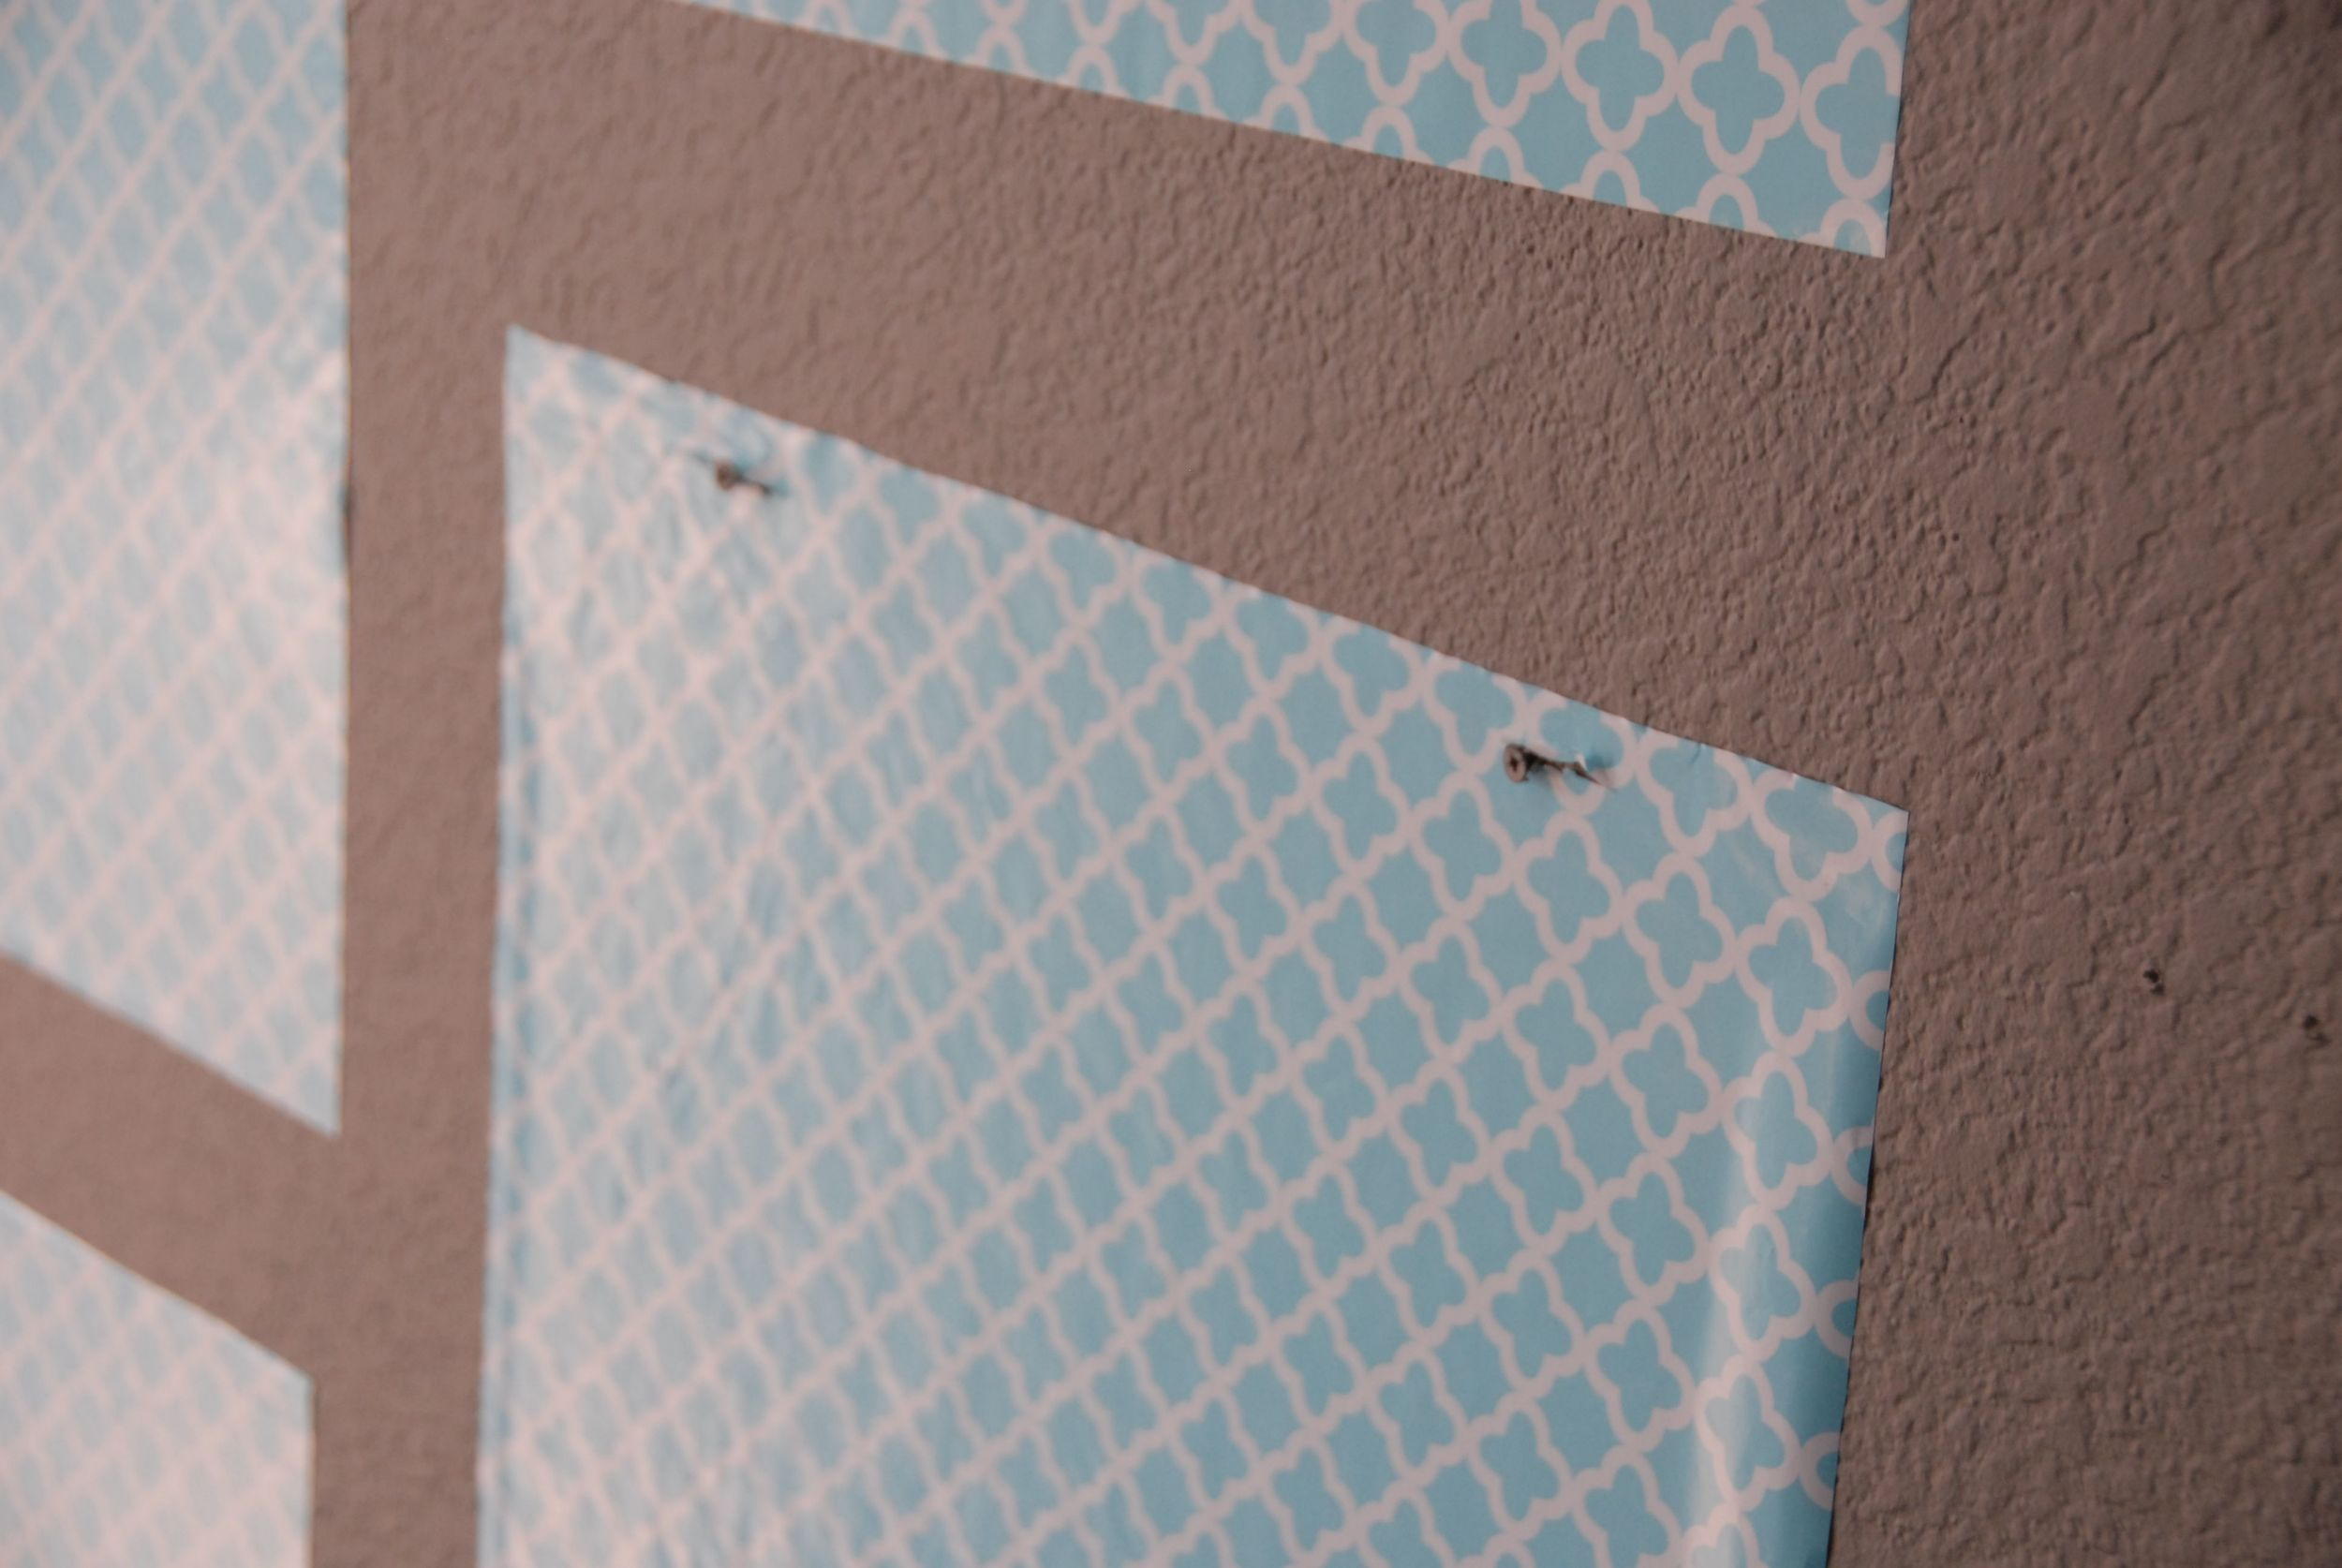 Step 3: Layout Your Photo Wall